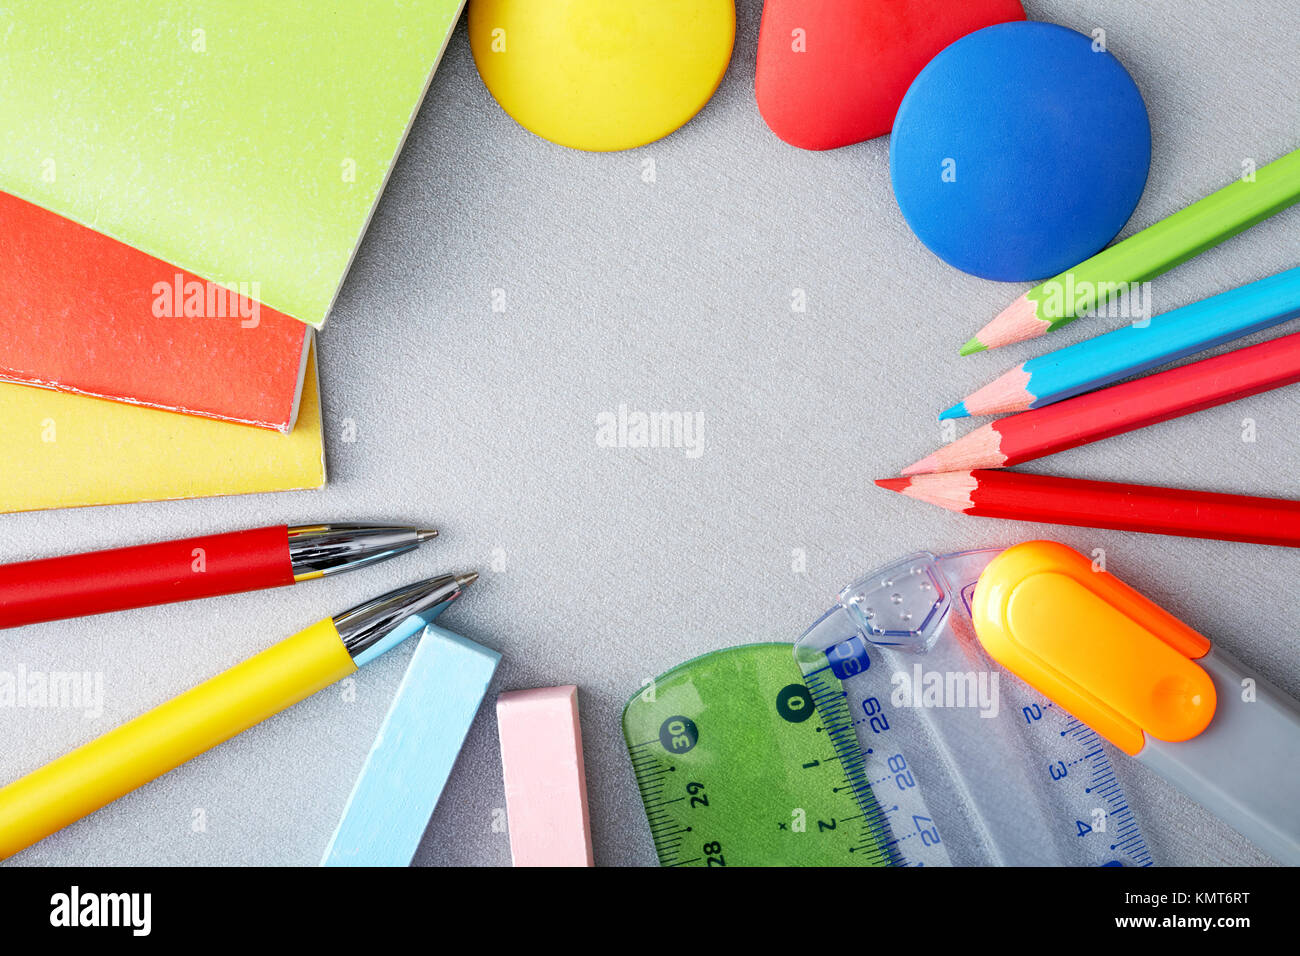 Circle of pens, pencils, chalks, rulers and exercise books - Stock Image